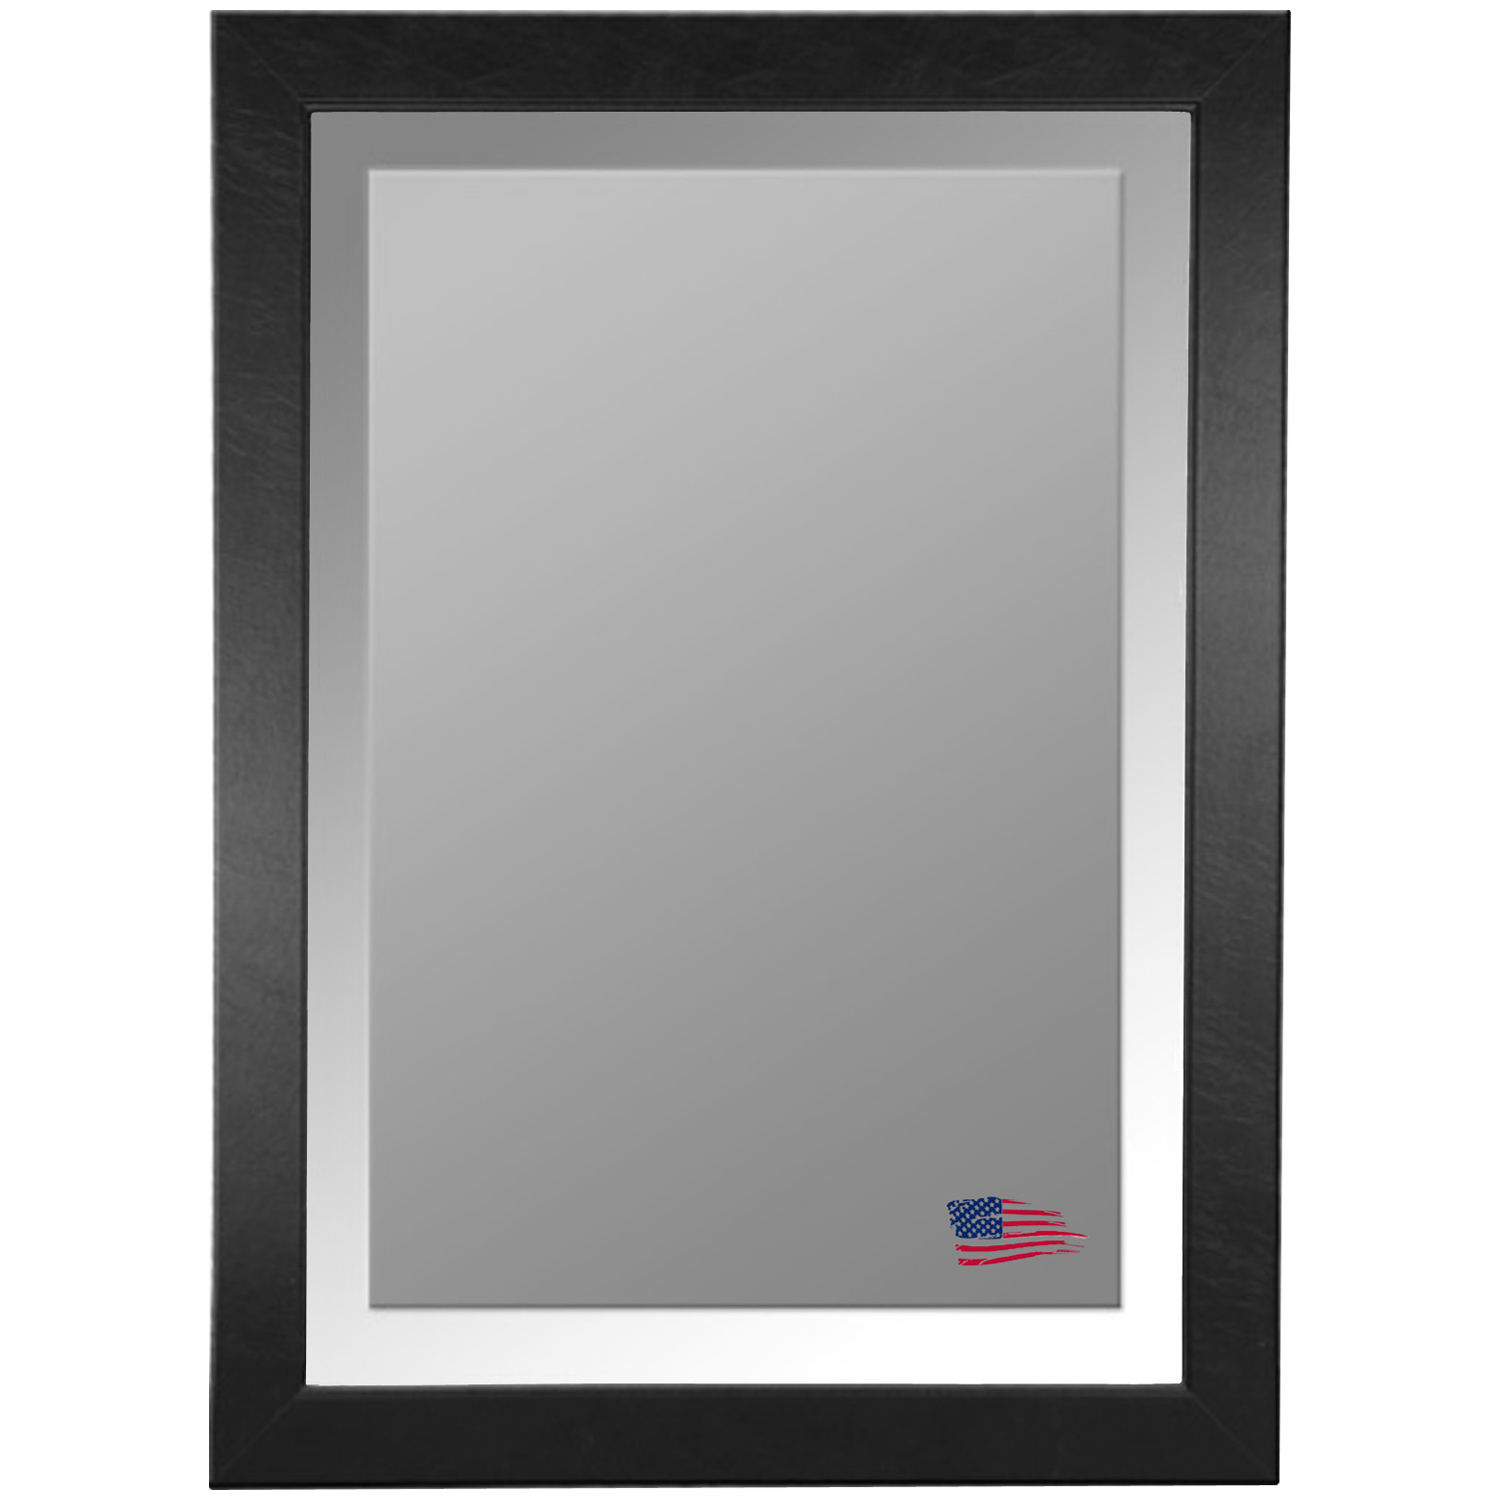 Wall Mirror - Black Leather Frame, Beveled Glass